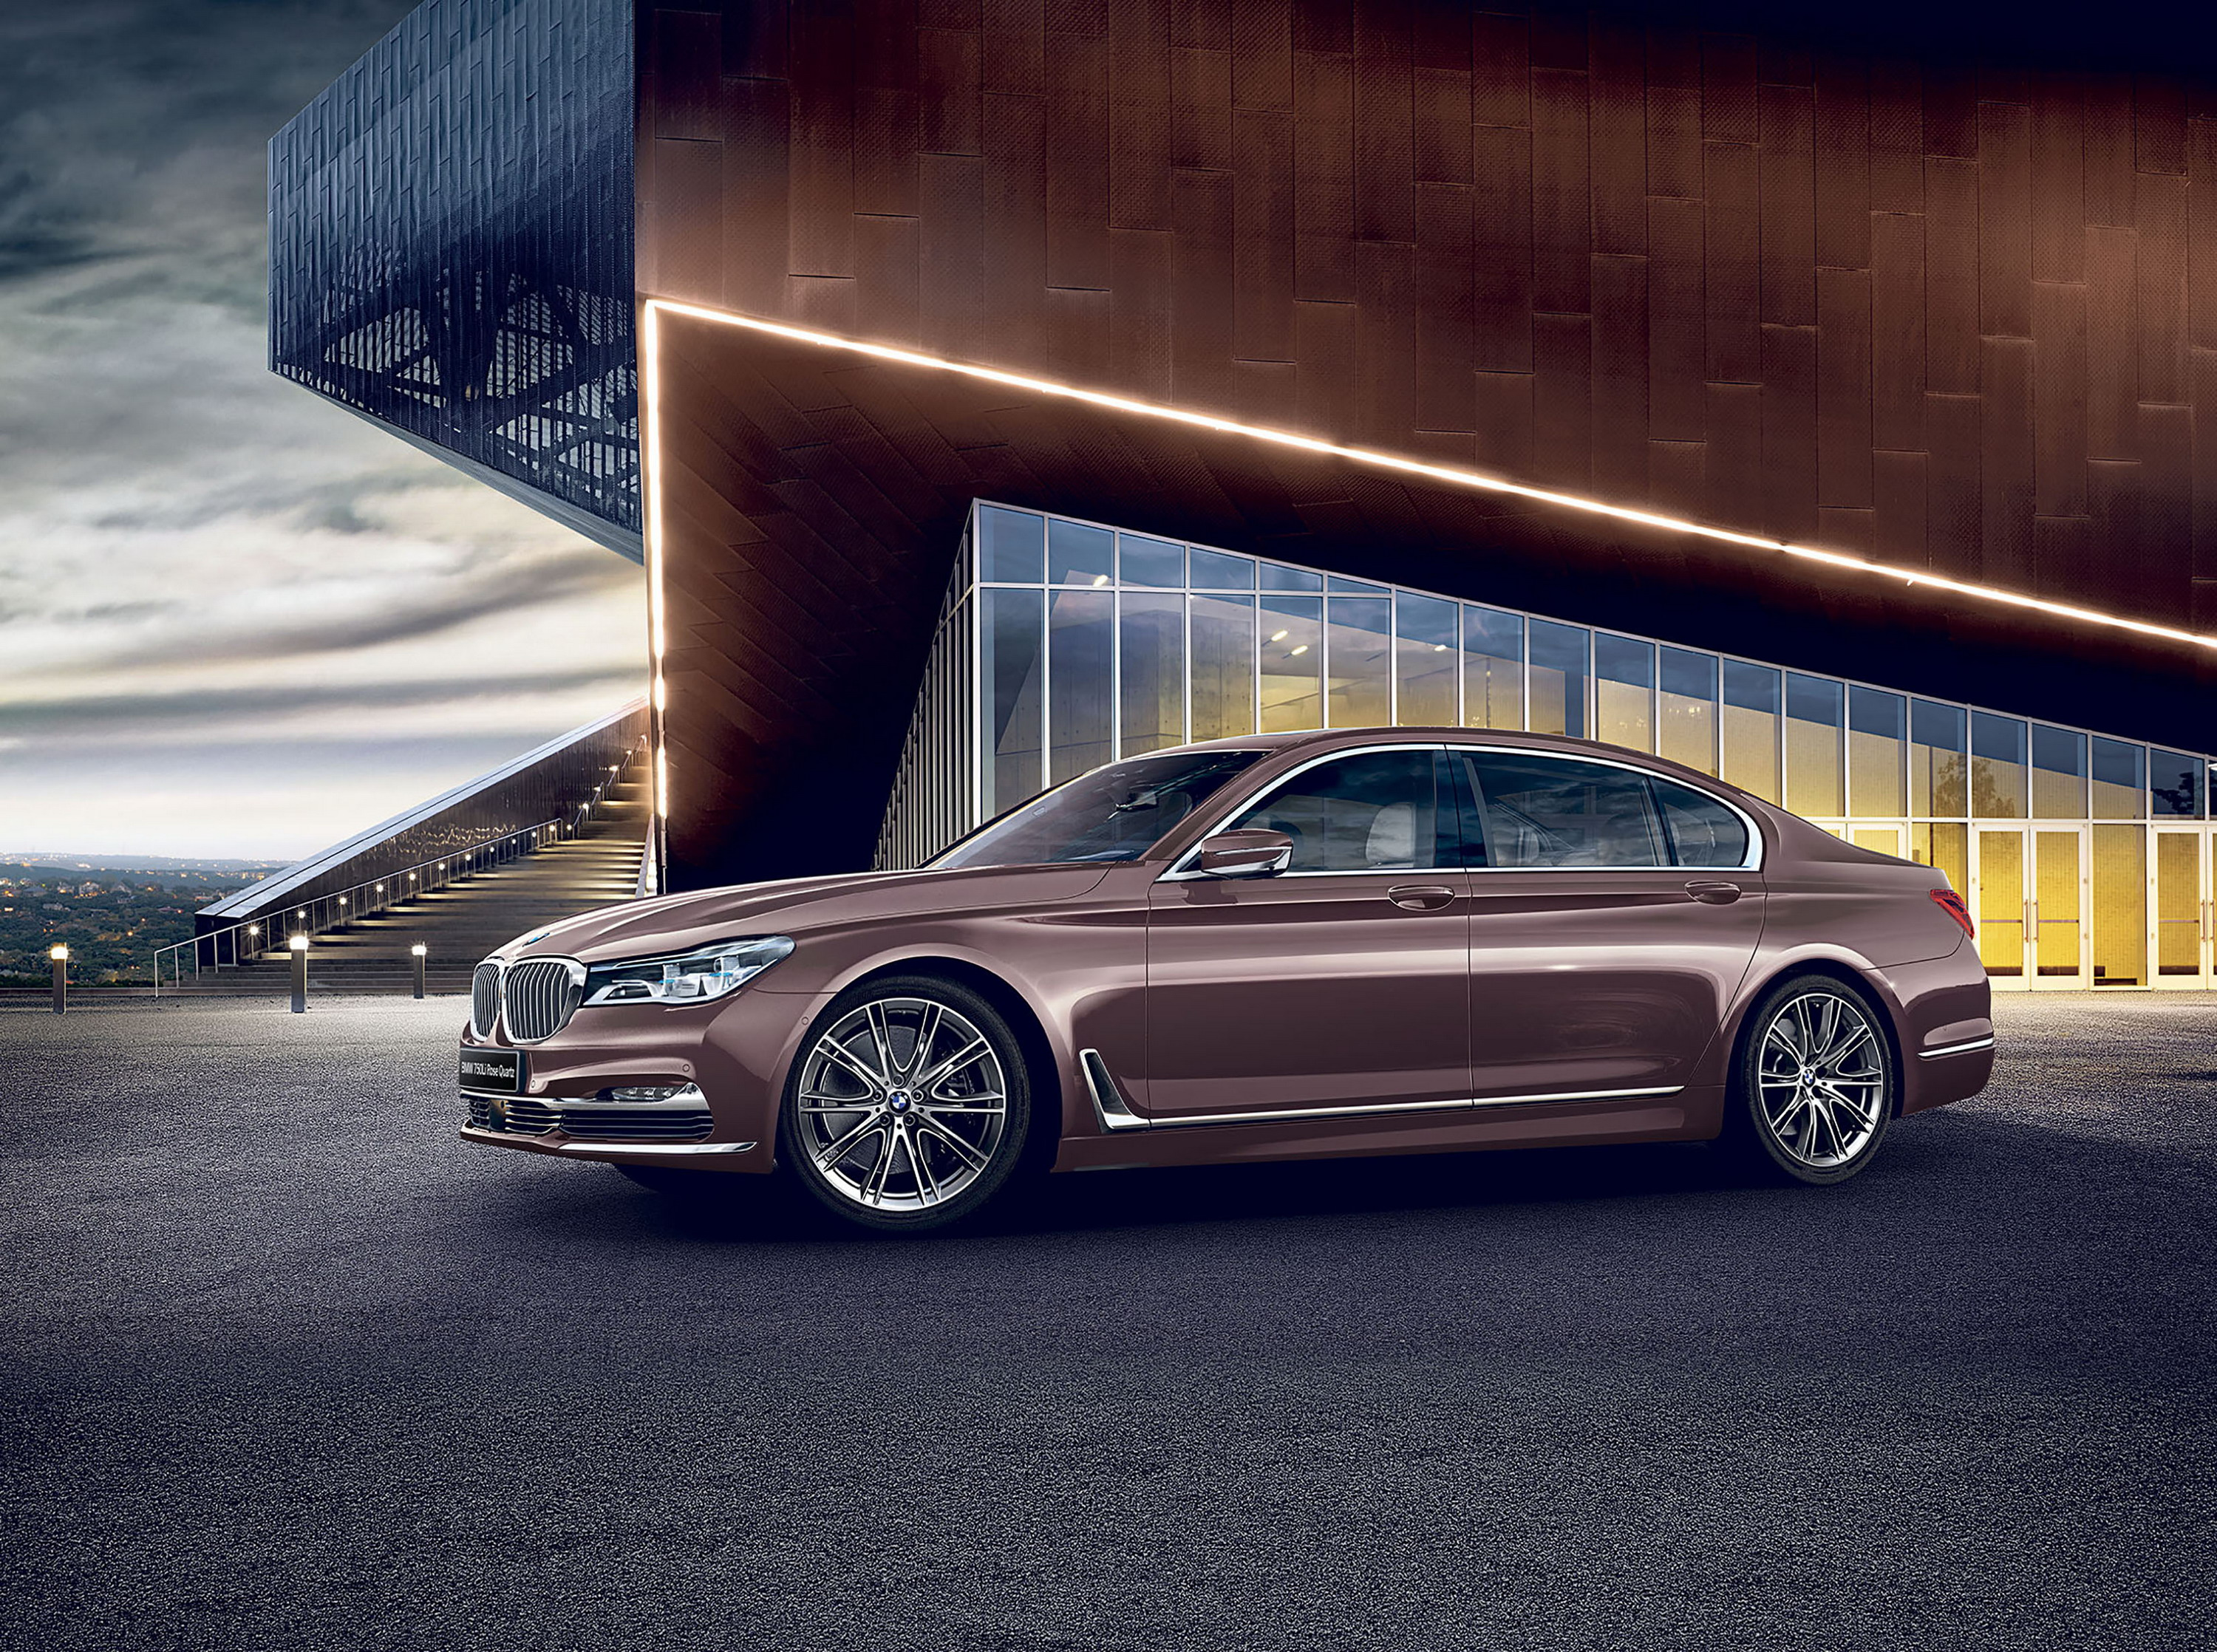 2017 BMW 7 Series Rose Quartz Edition